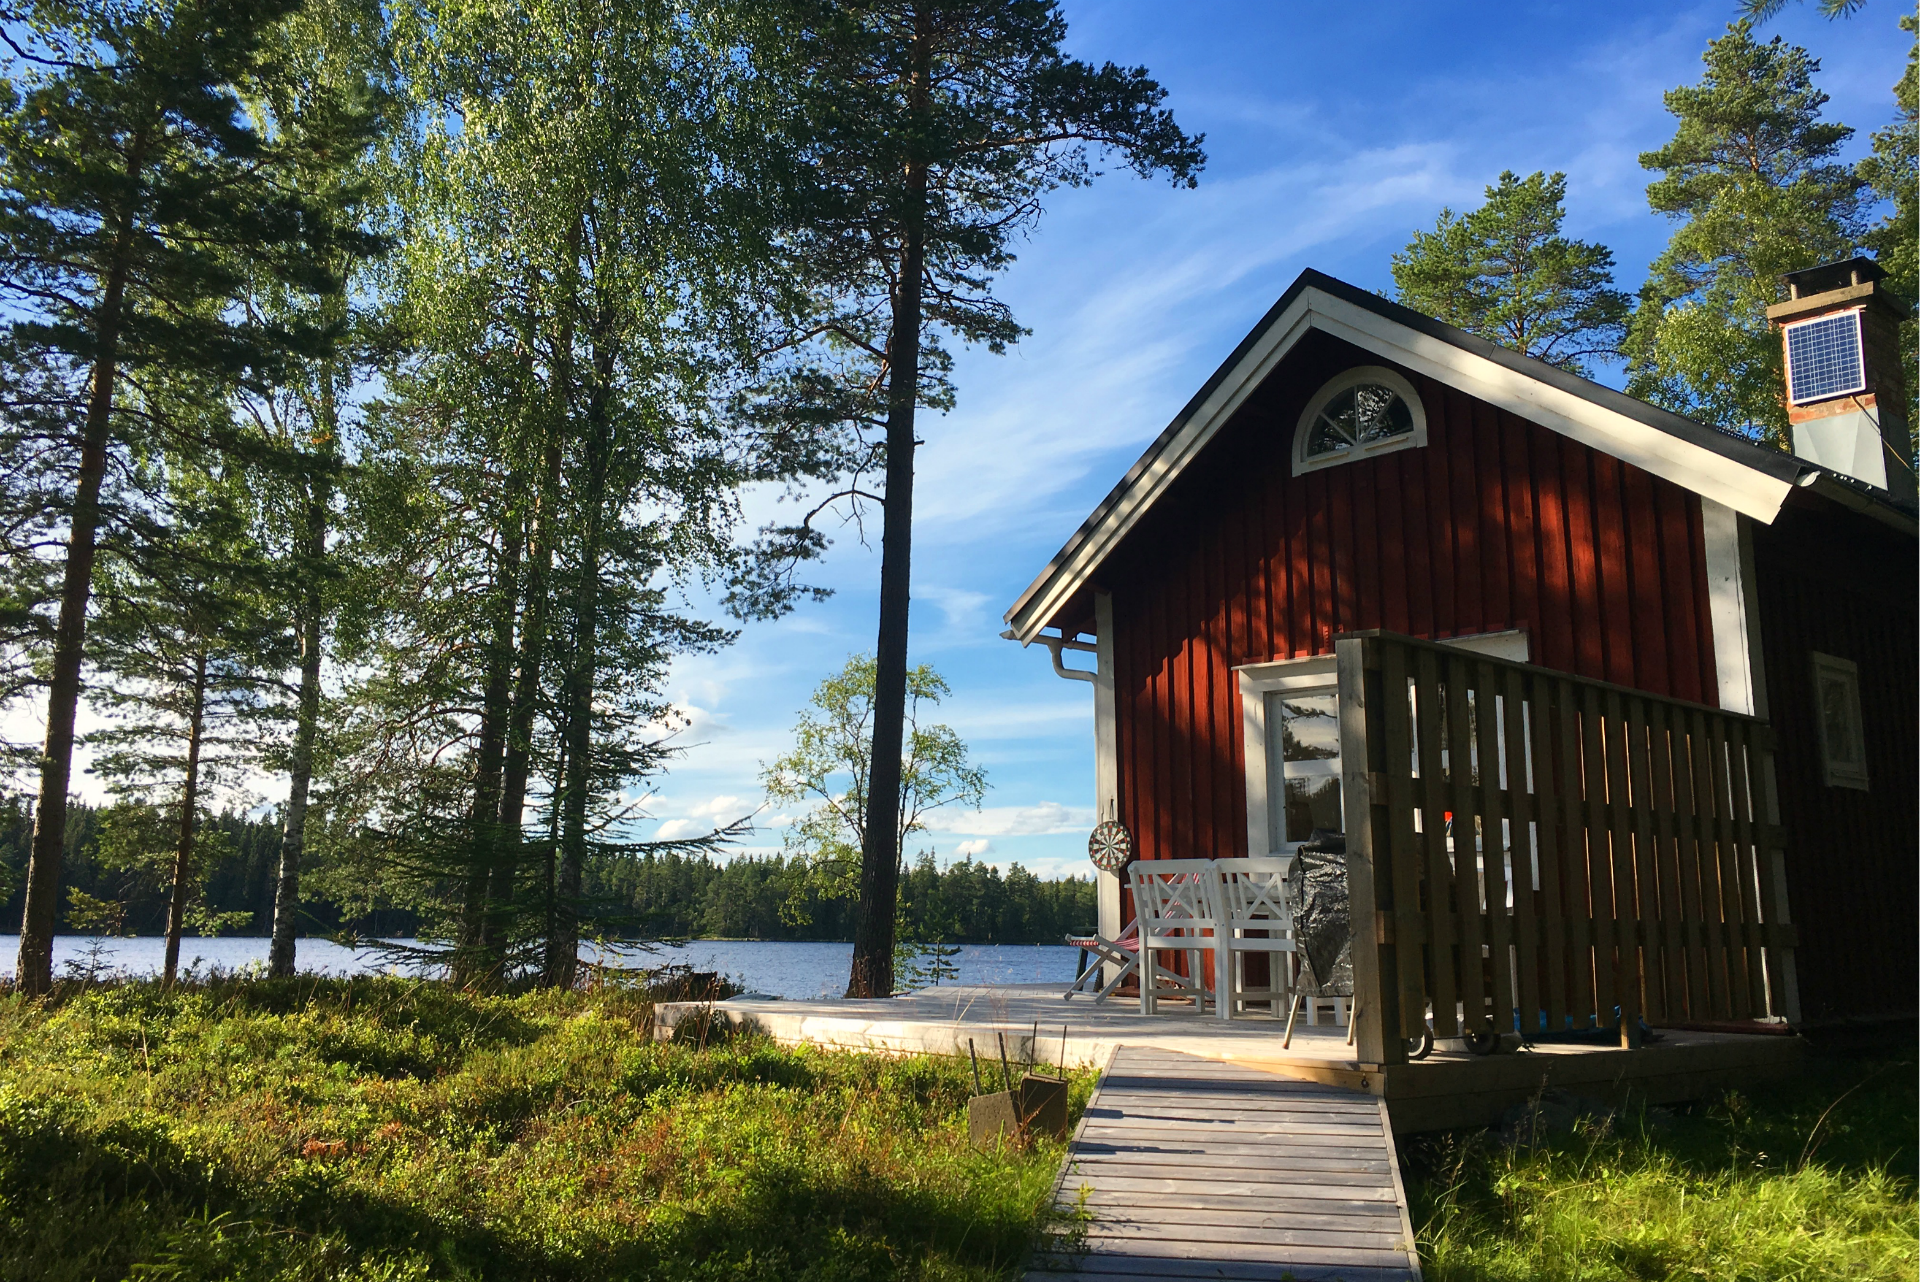 Swedish summerhouse